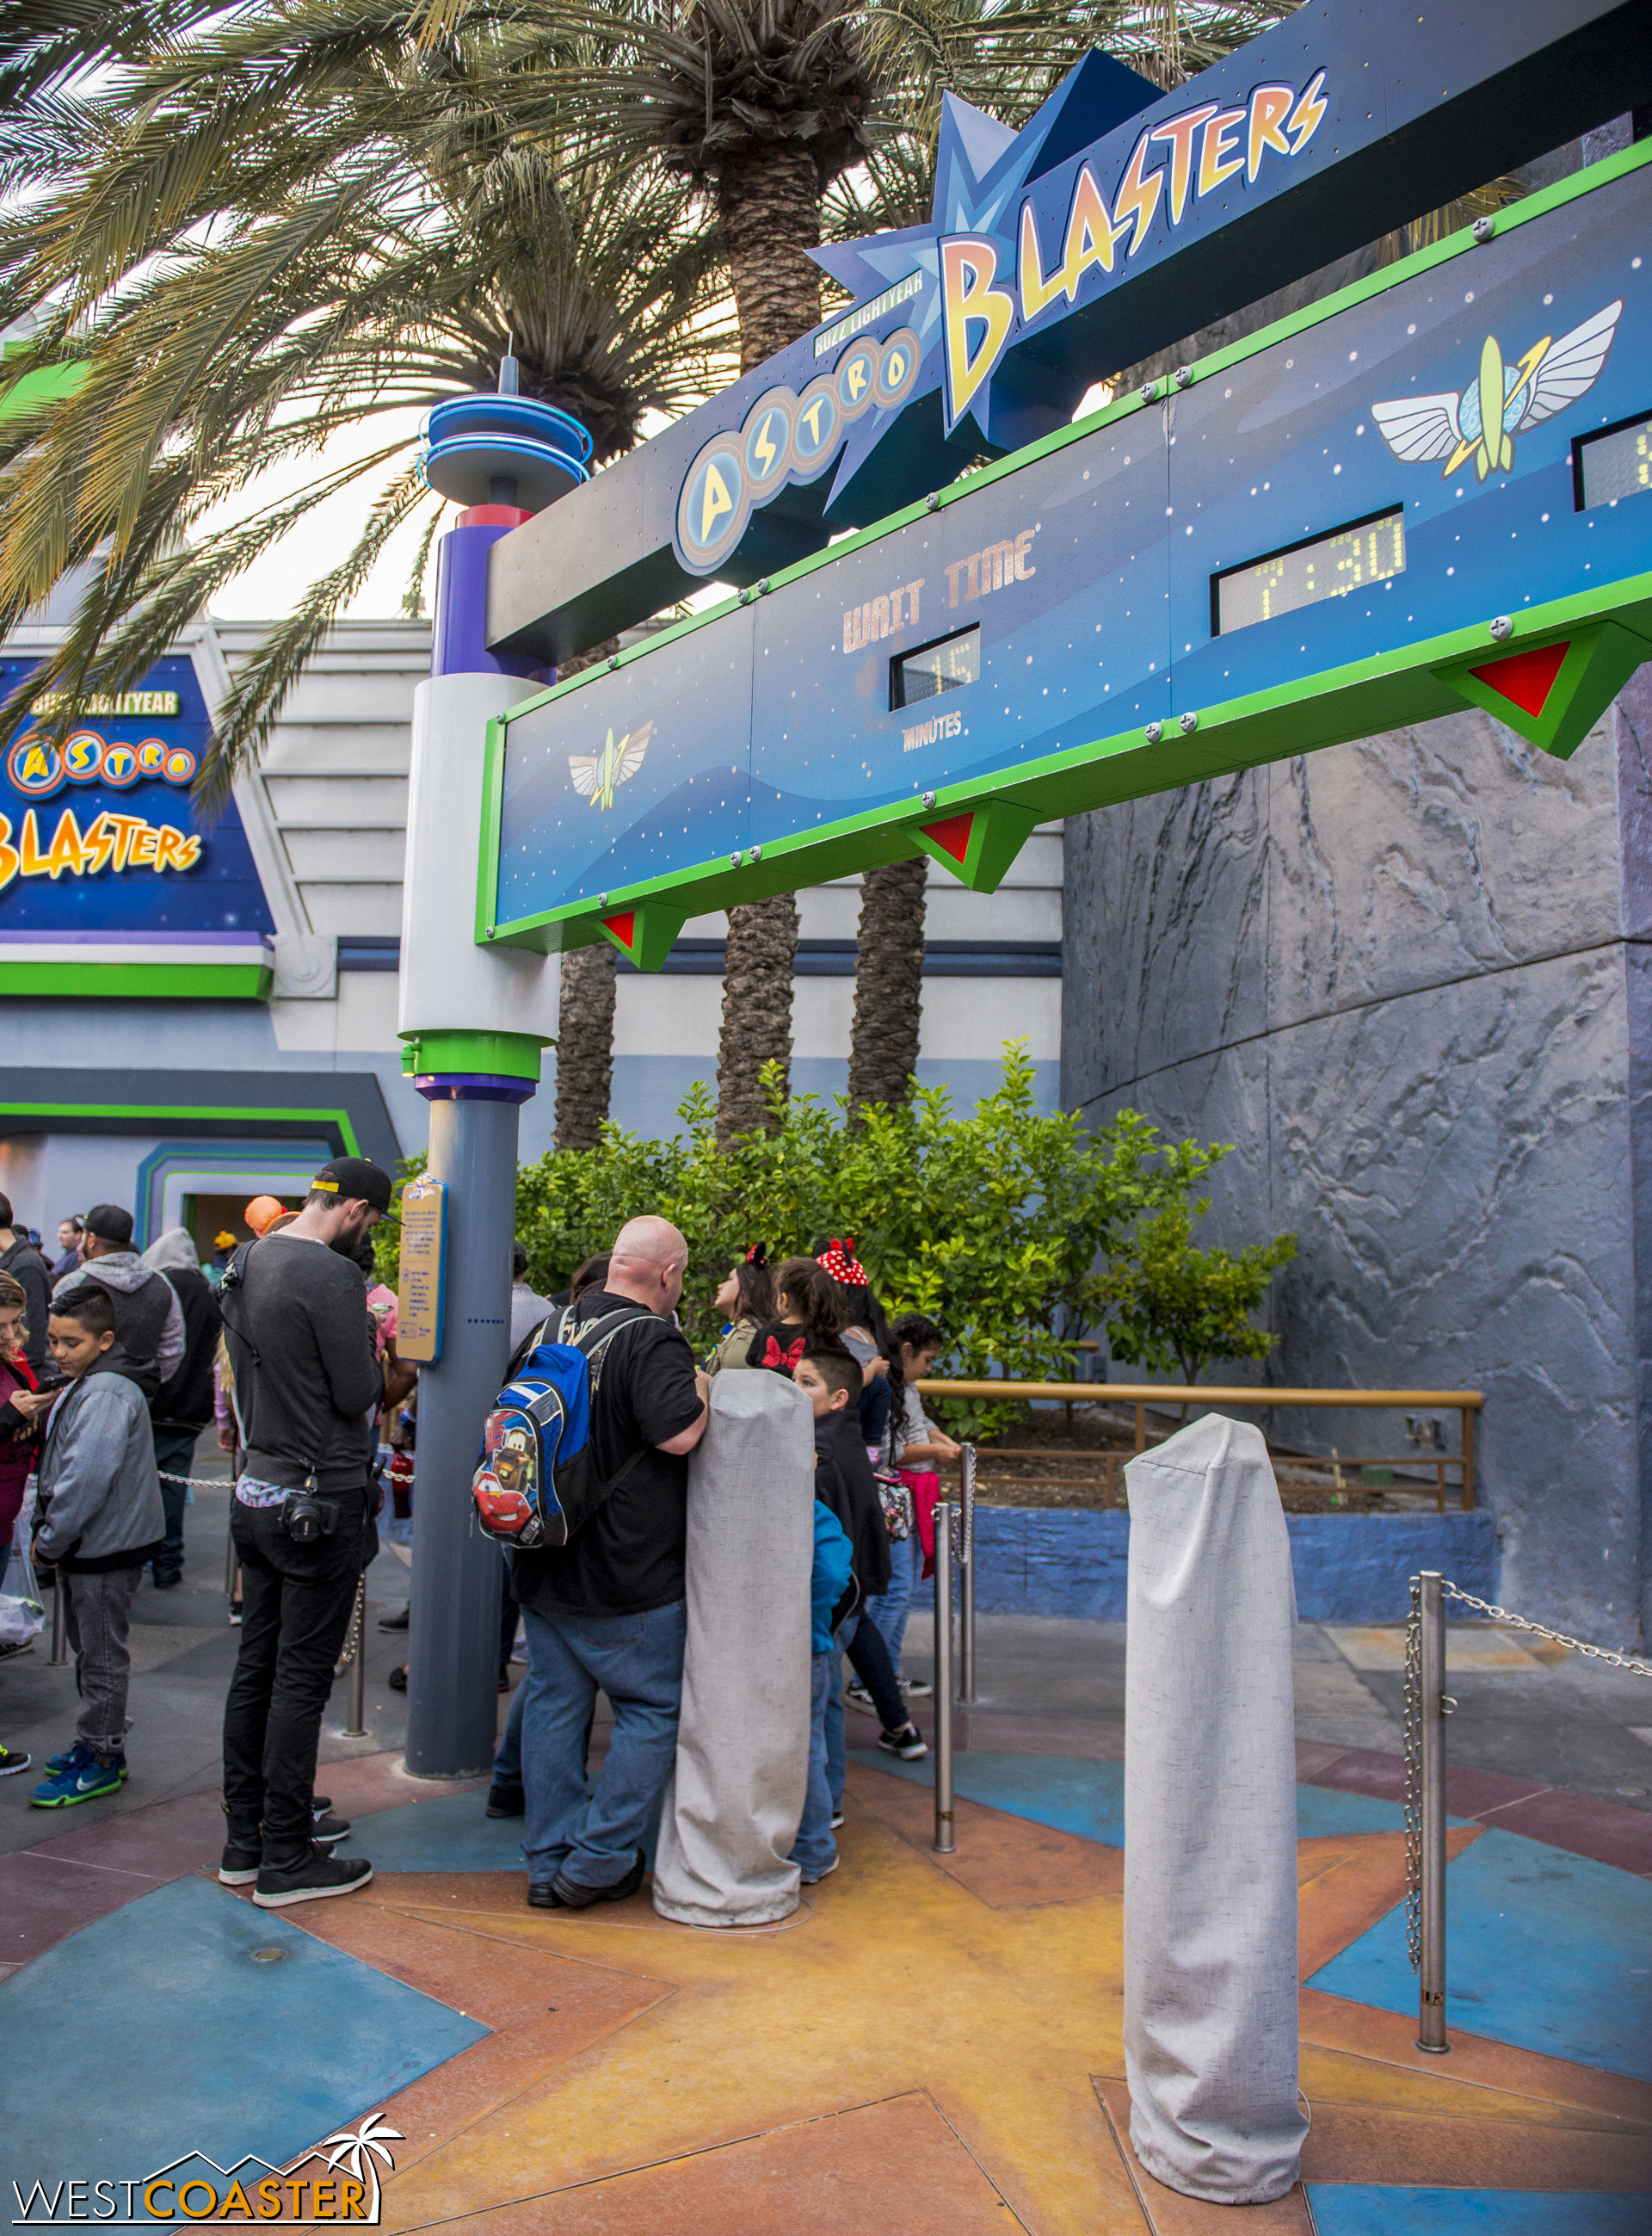 And even at Buzz Lightyear, which along with Haunted Mansion represent two rides whose capacities are more adversely impacted by FastPass than usual, and which definitely don't need it (Mansion even used to have it regularly, and then it was removed due to capacity complications).